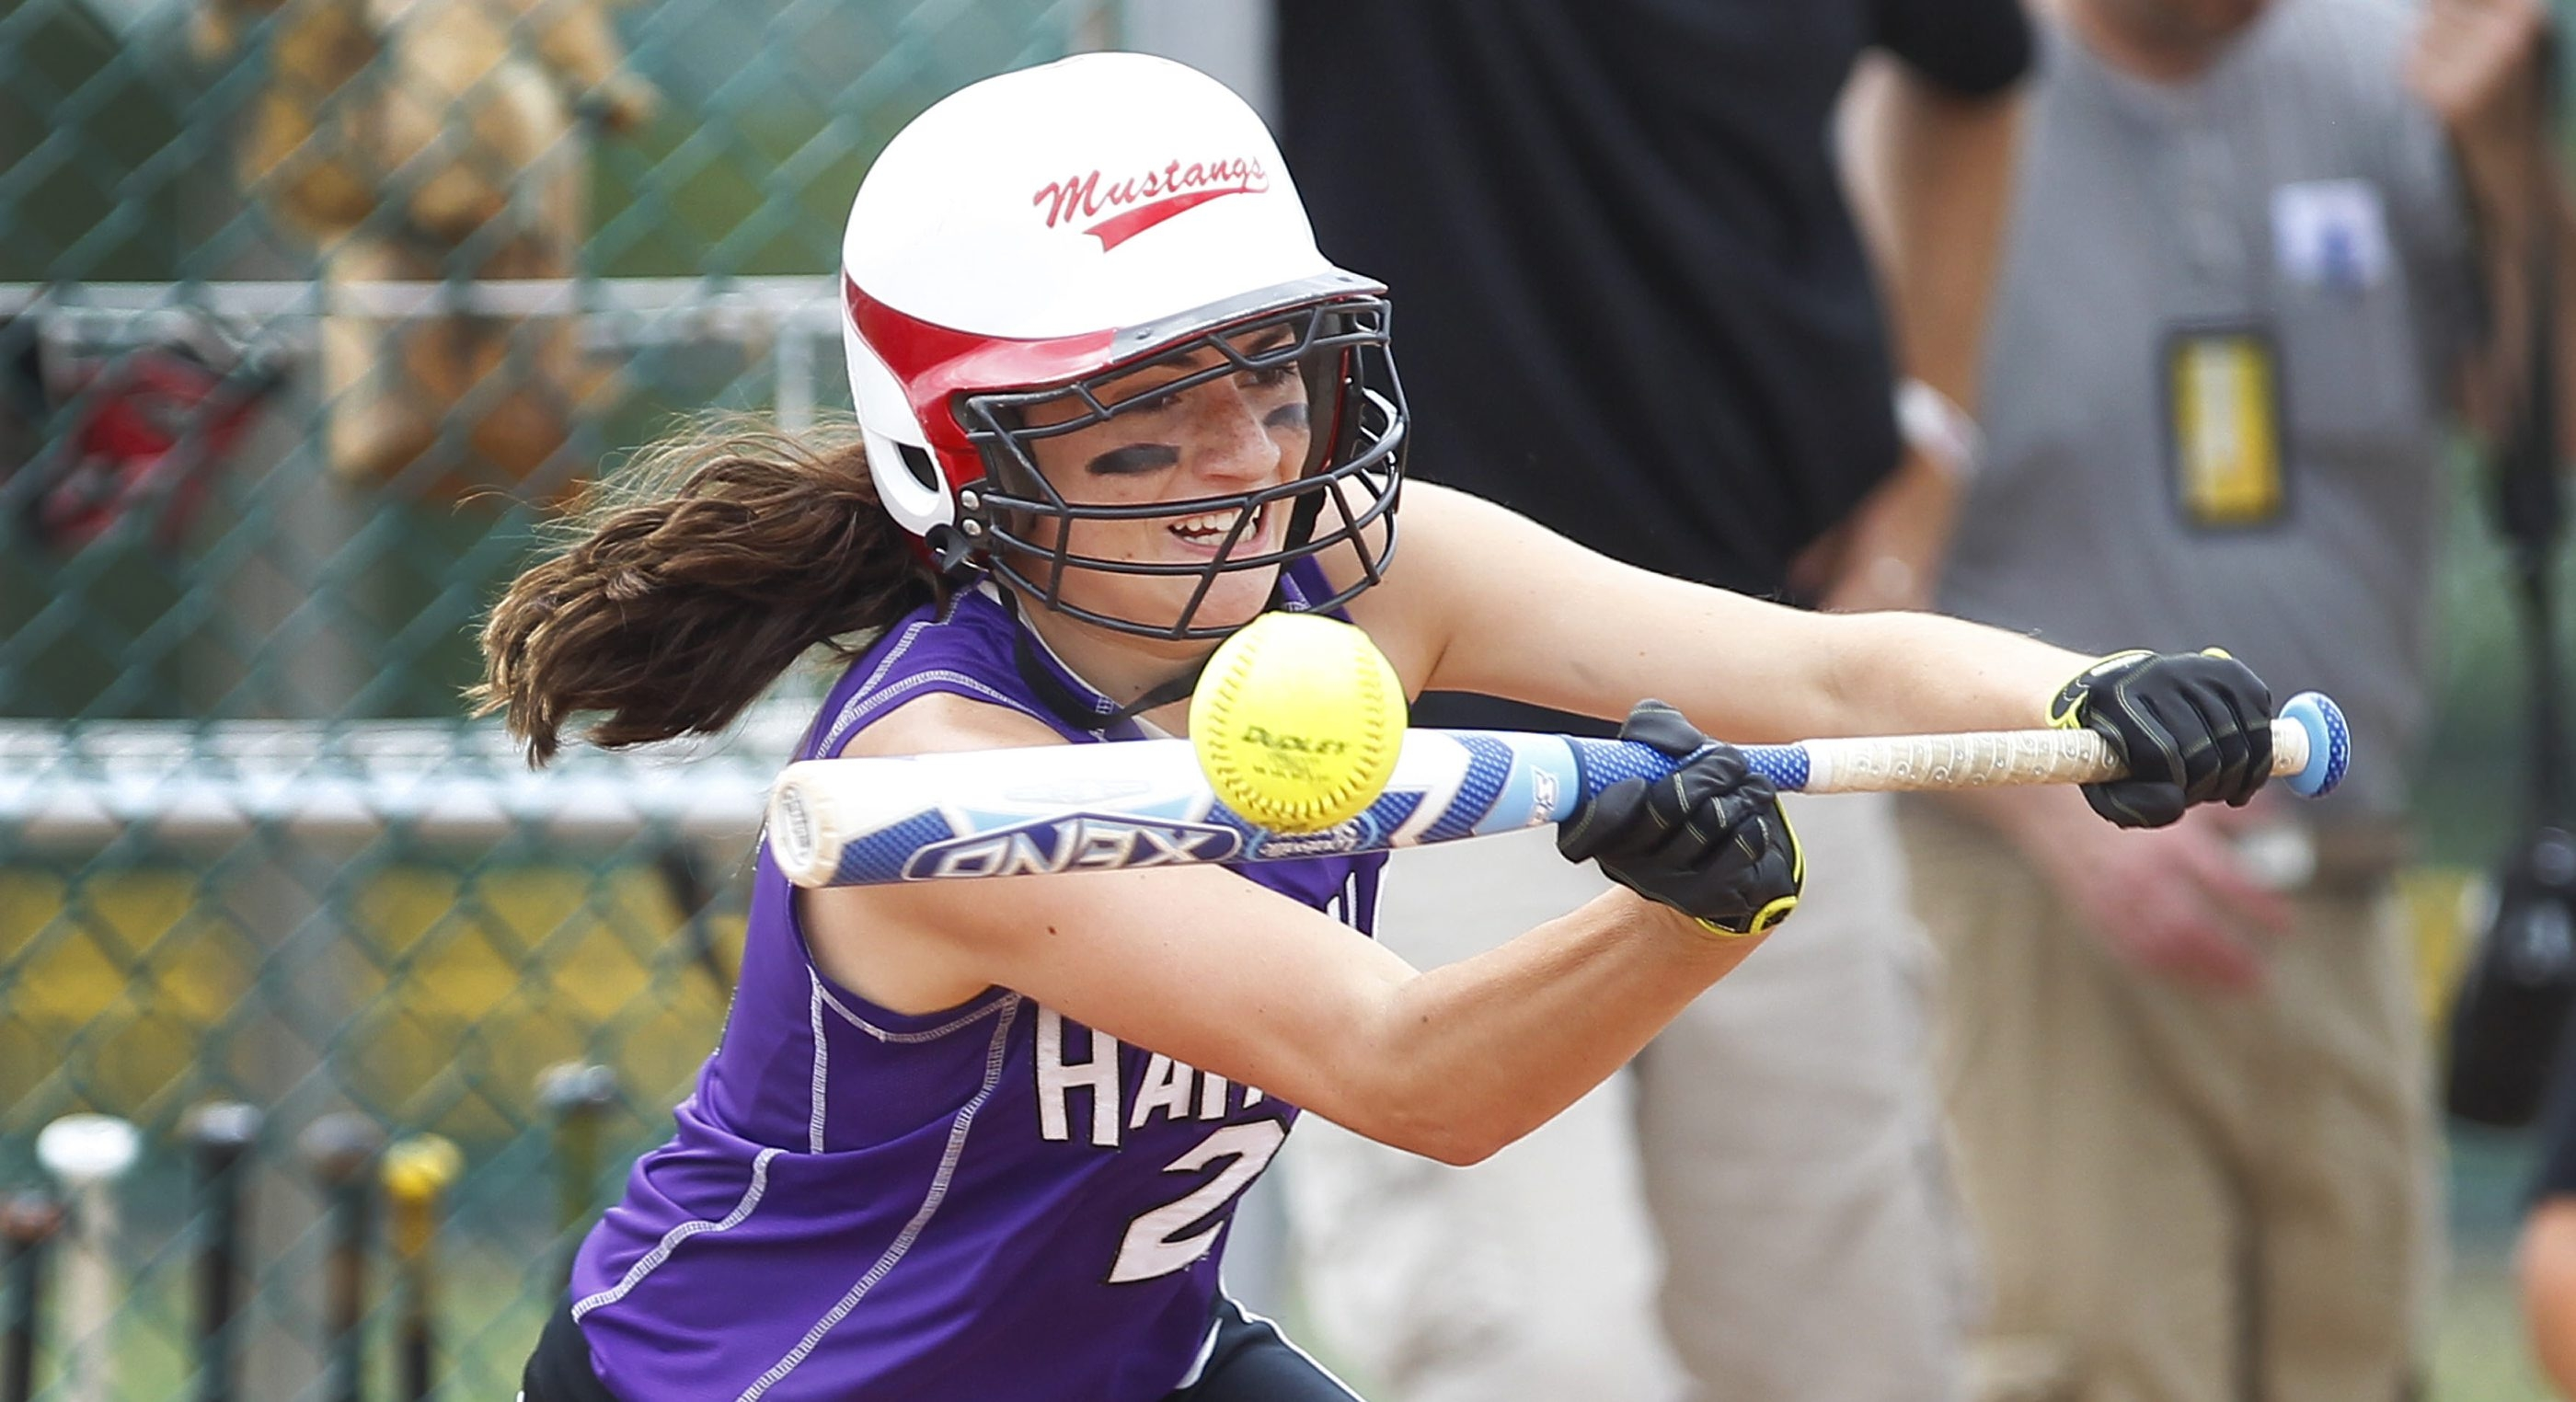 Leah Jones and the Hamburg softball team play Rochester Mercy today at 4 p.m. in the Class A Far West Regionals at Brockport State.